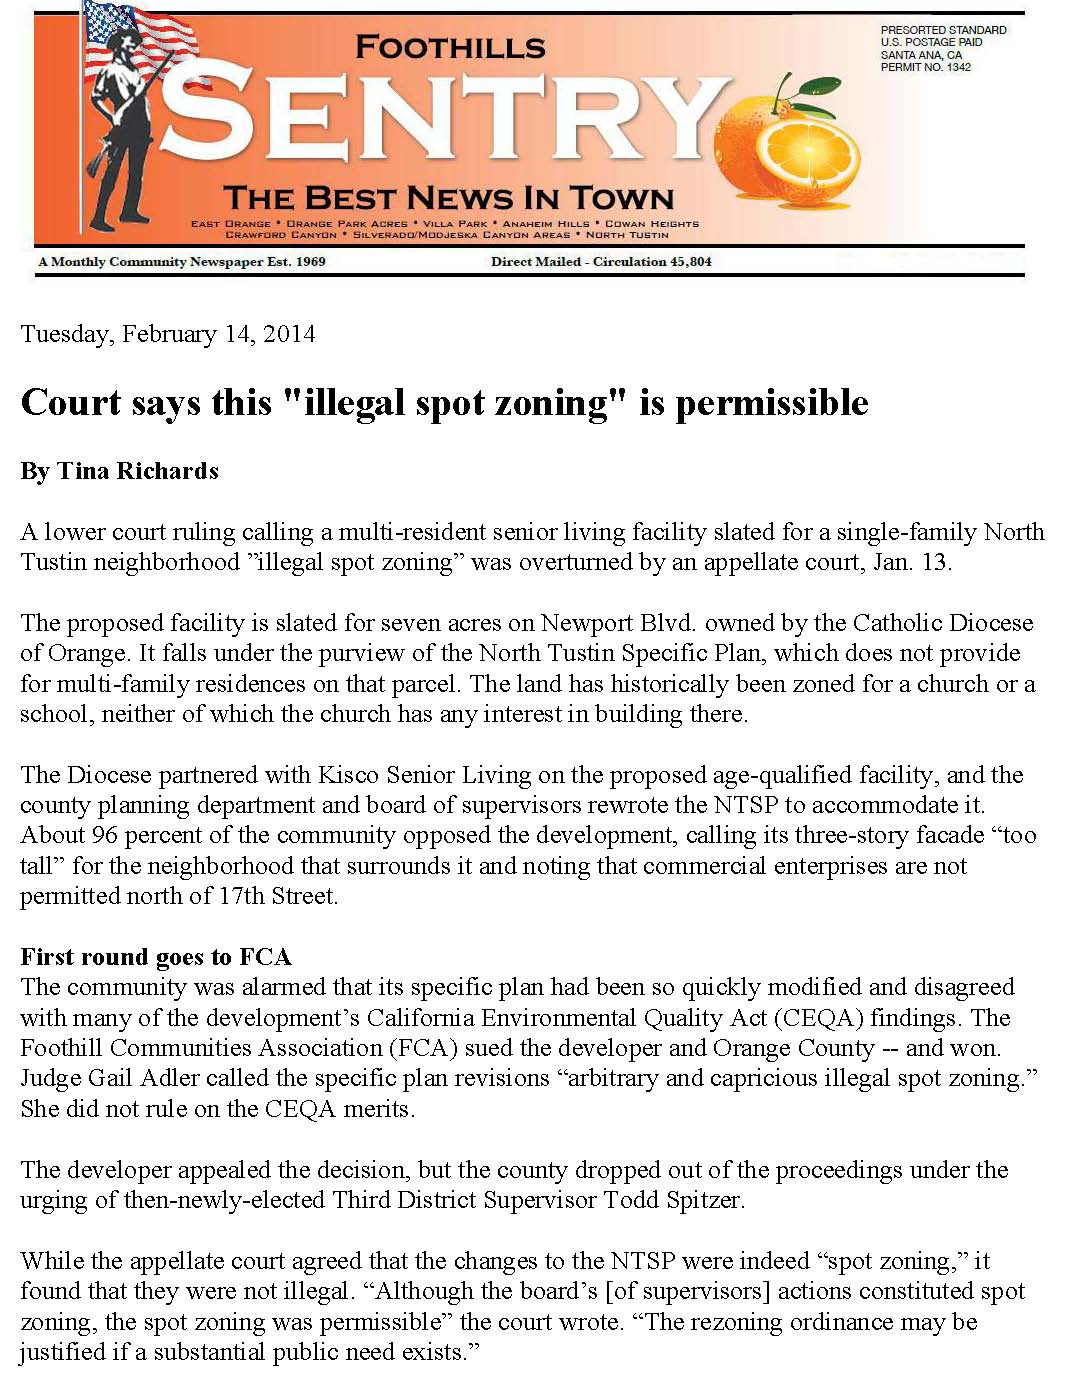 Court-says-this-illegal-zoning-is-legal-1_Page_1